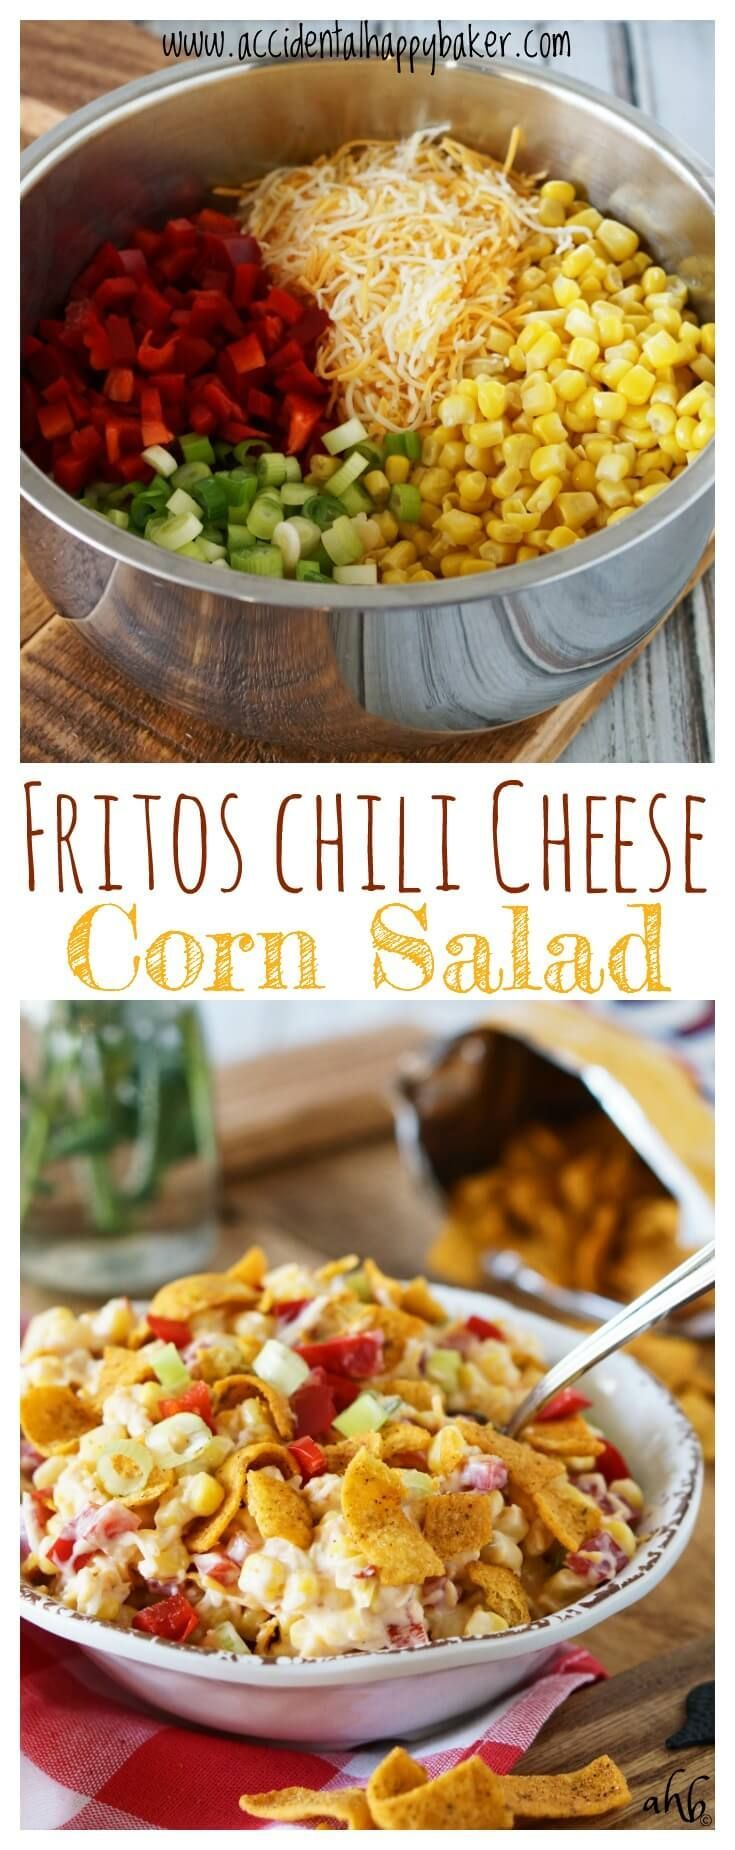 Crisp veggies, crunchy Fritos corn chips, cheddar cheese and a zippy creamy dressing. This Frito chili cheese corn salad couldn't be easier, or more delicious!